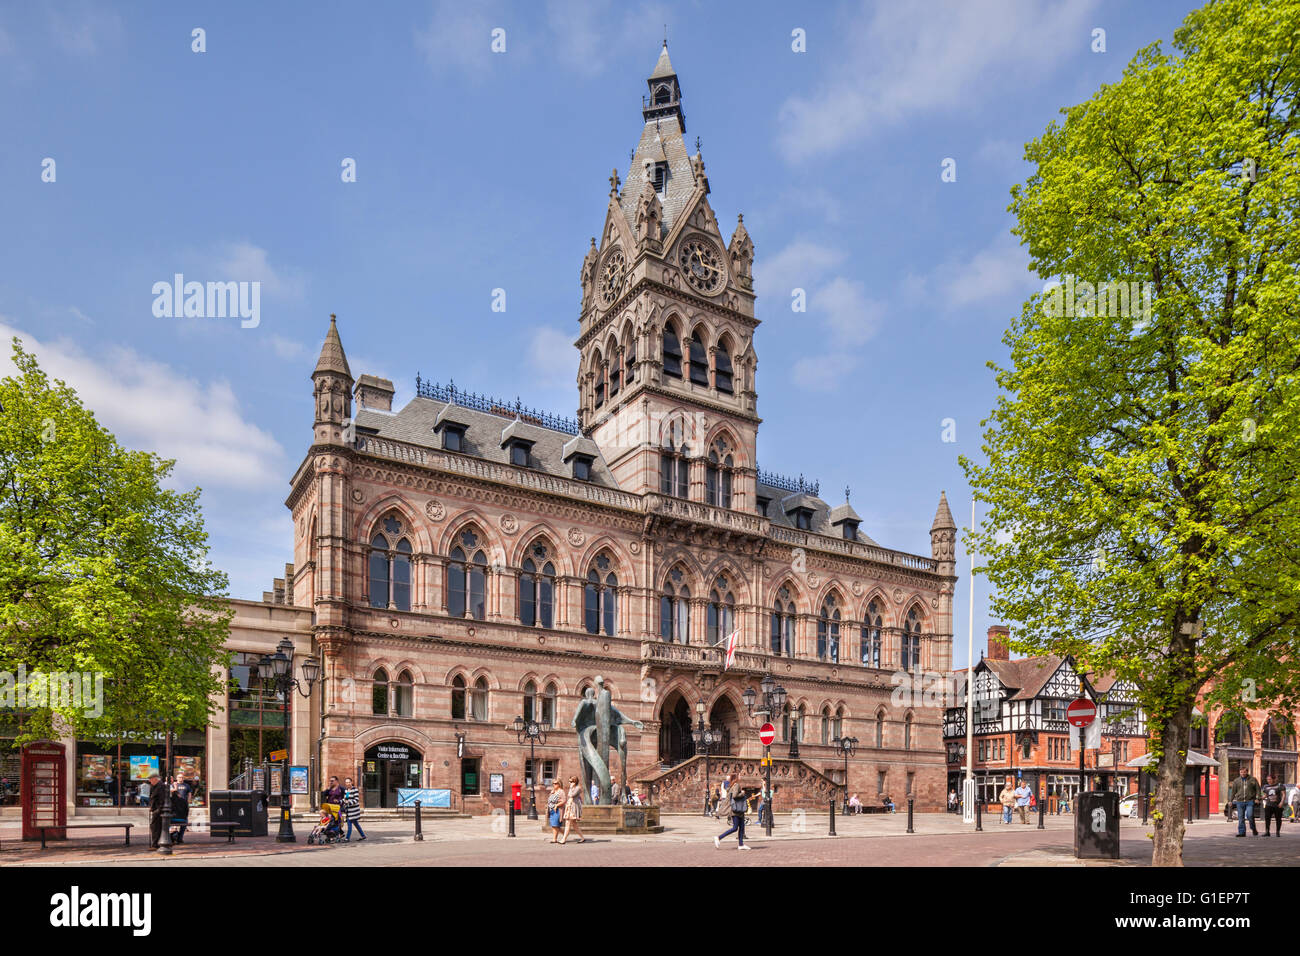 The Town Hall In Chester Cheshire England A Gothic Revival Building Opened 1869